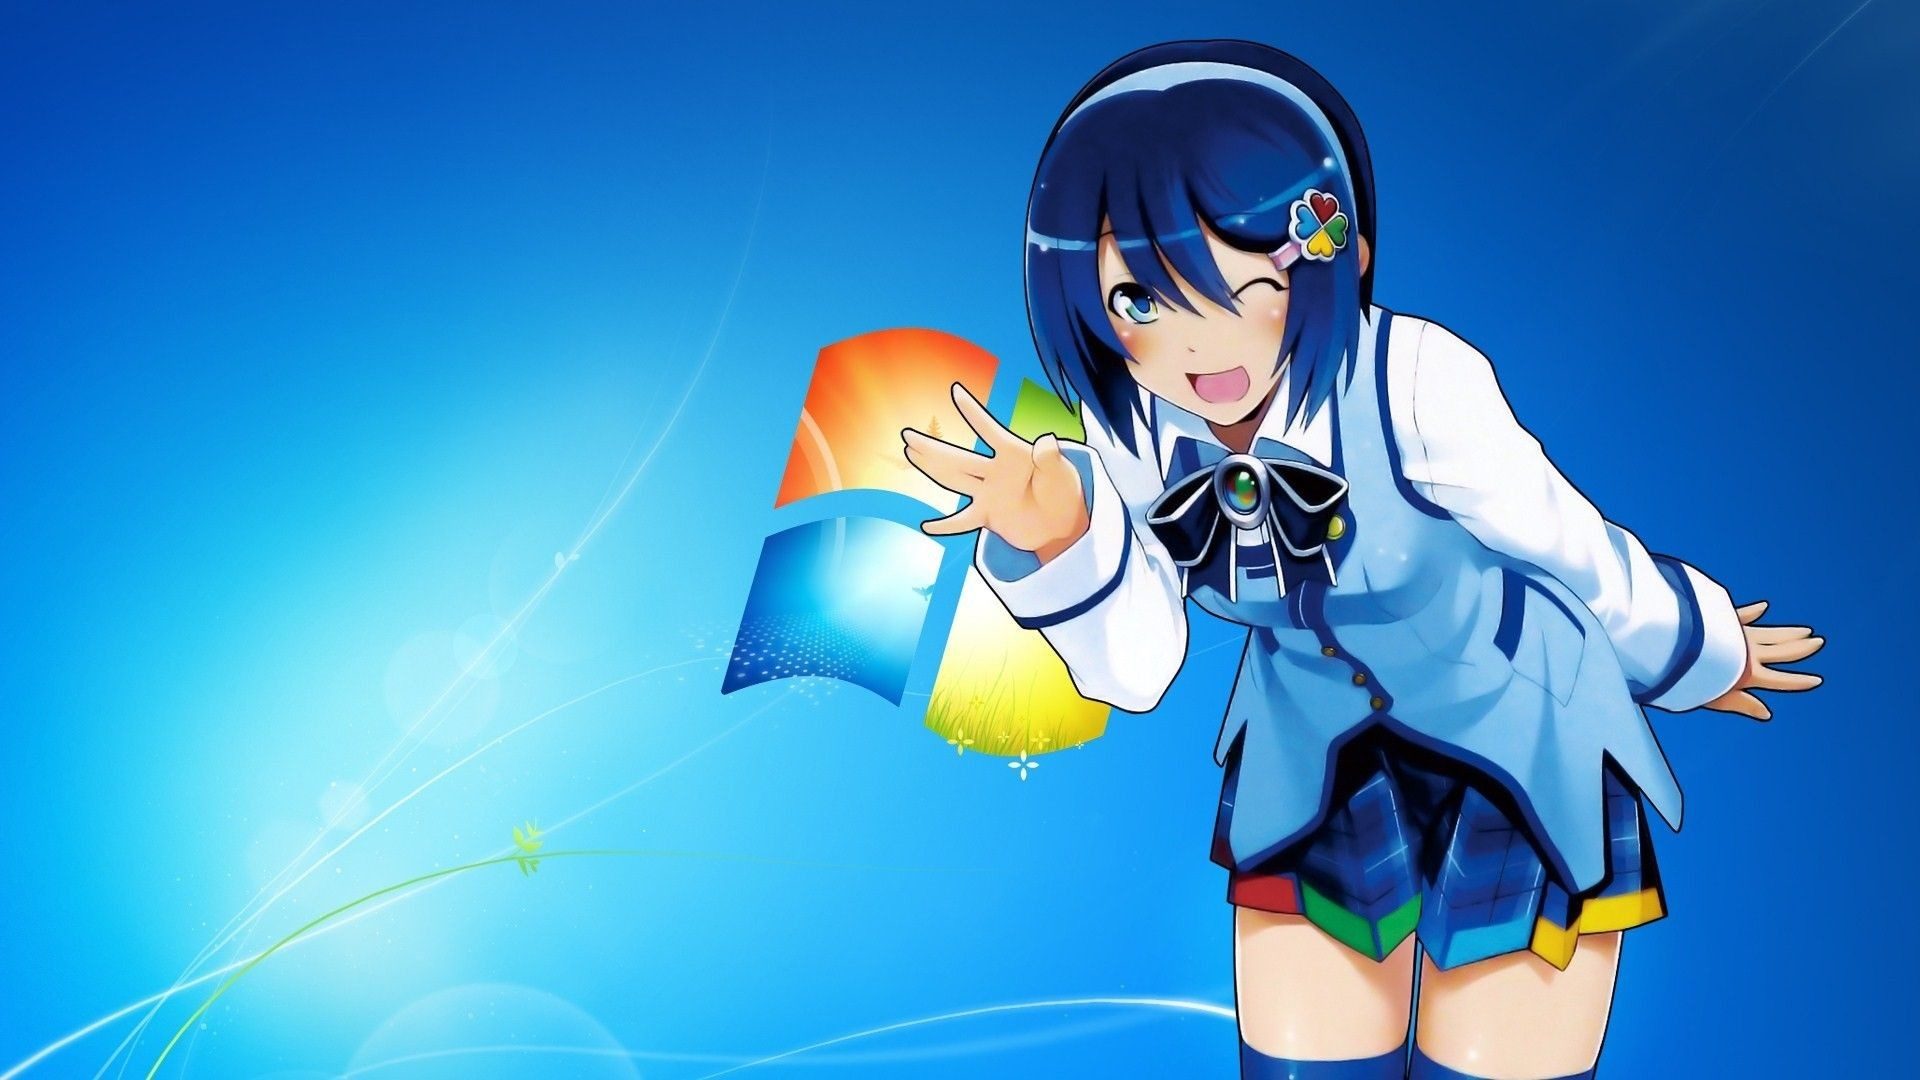 Res: 1920x1080, Windows-7-Anime-Wallpaper-Galerie-(39-Plus)-PIC-WPW4010853